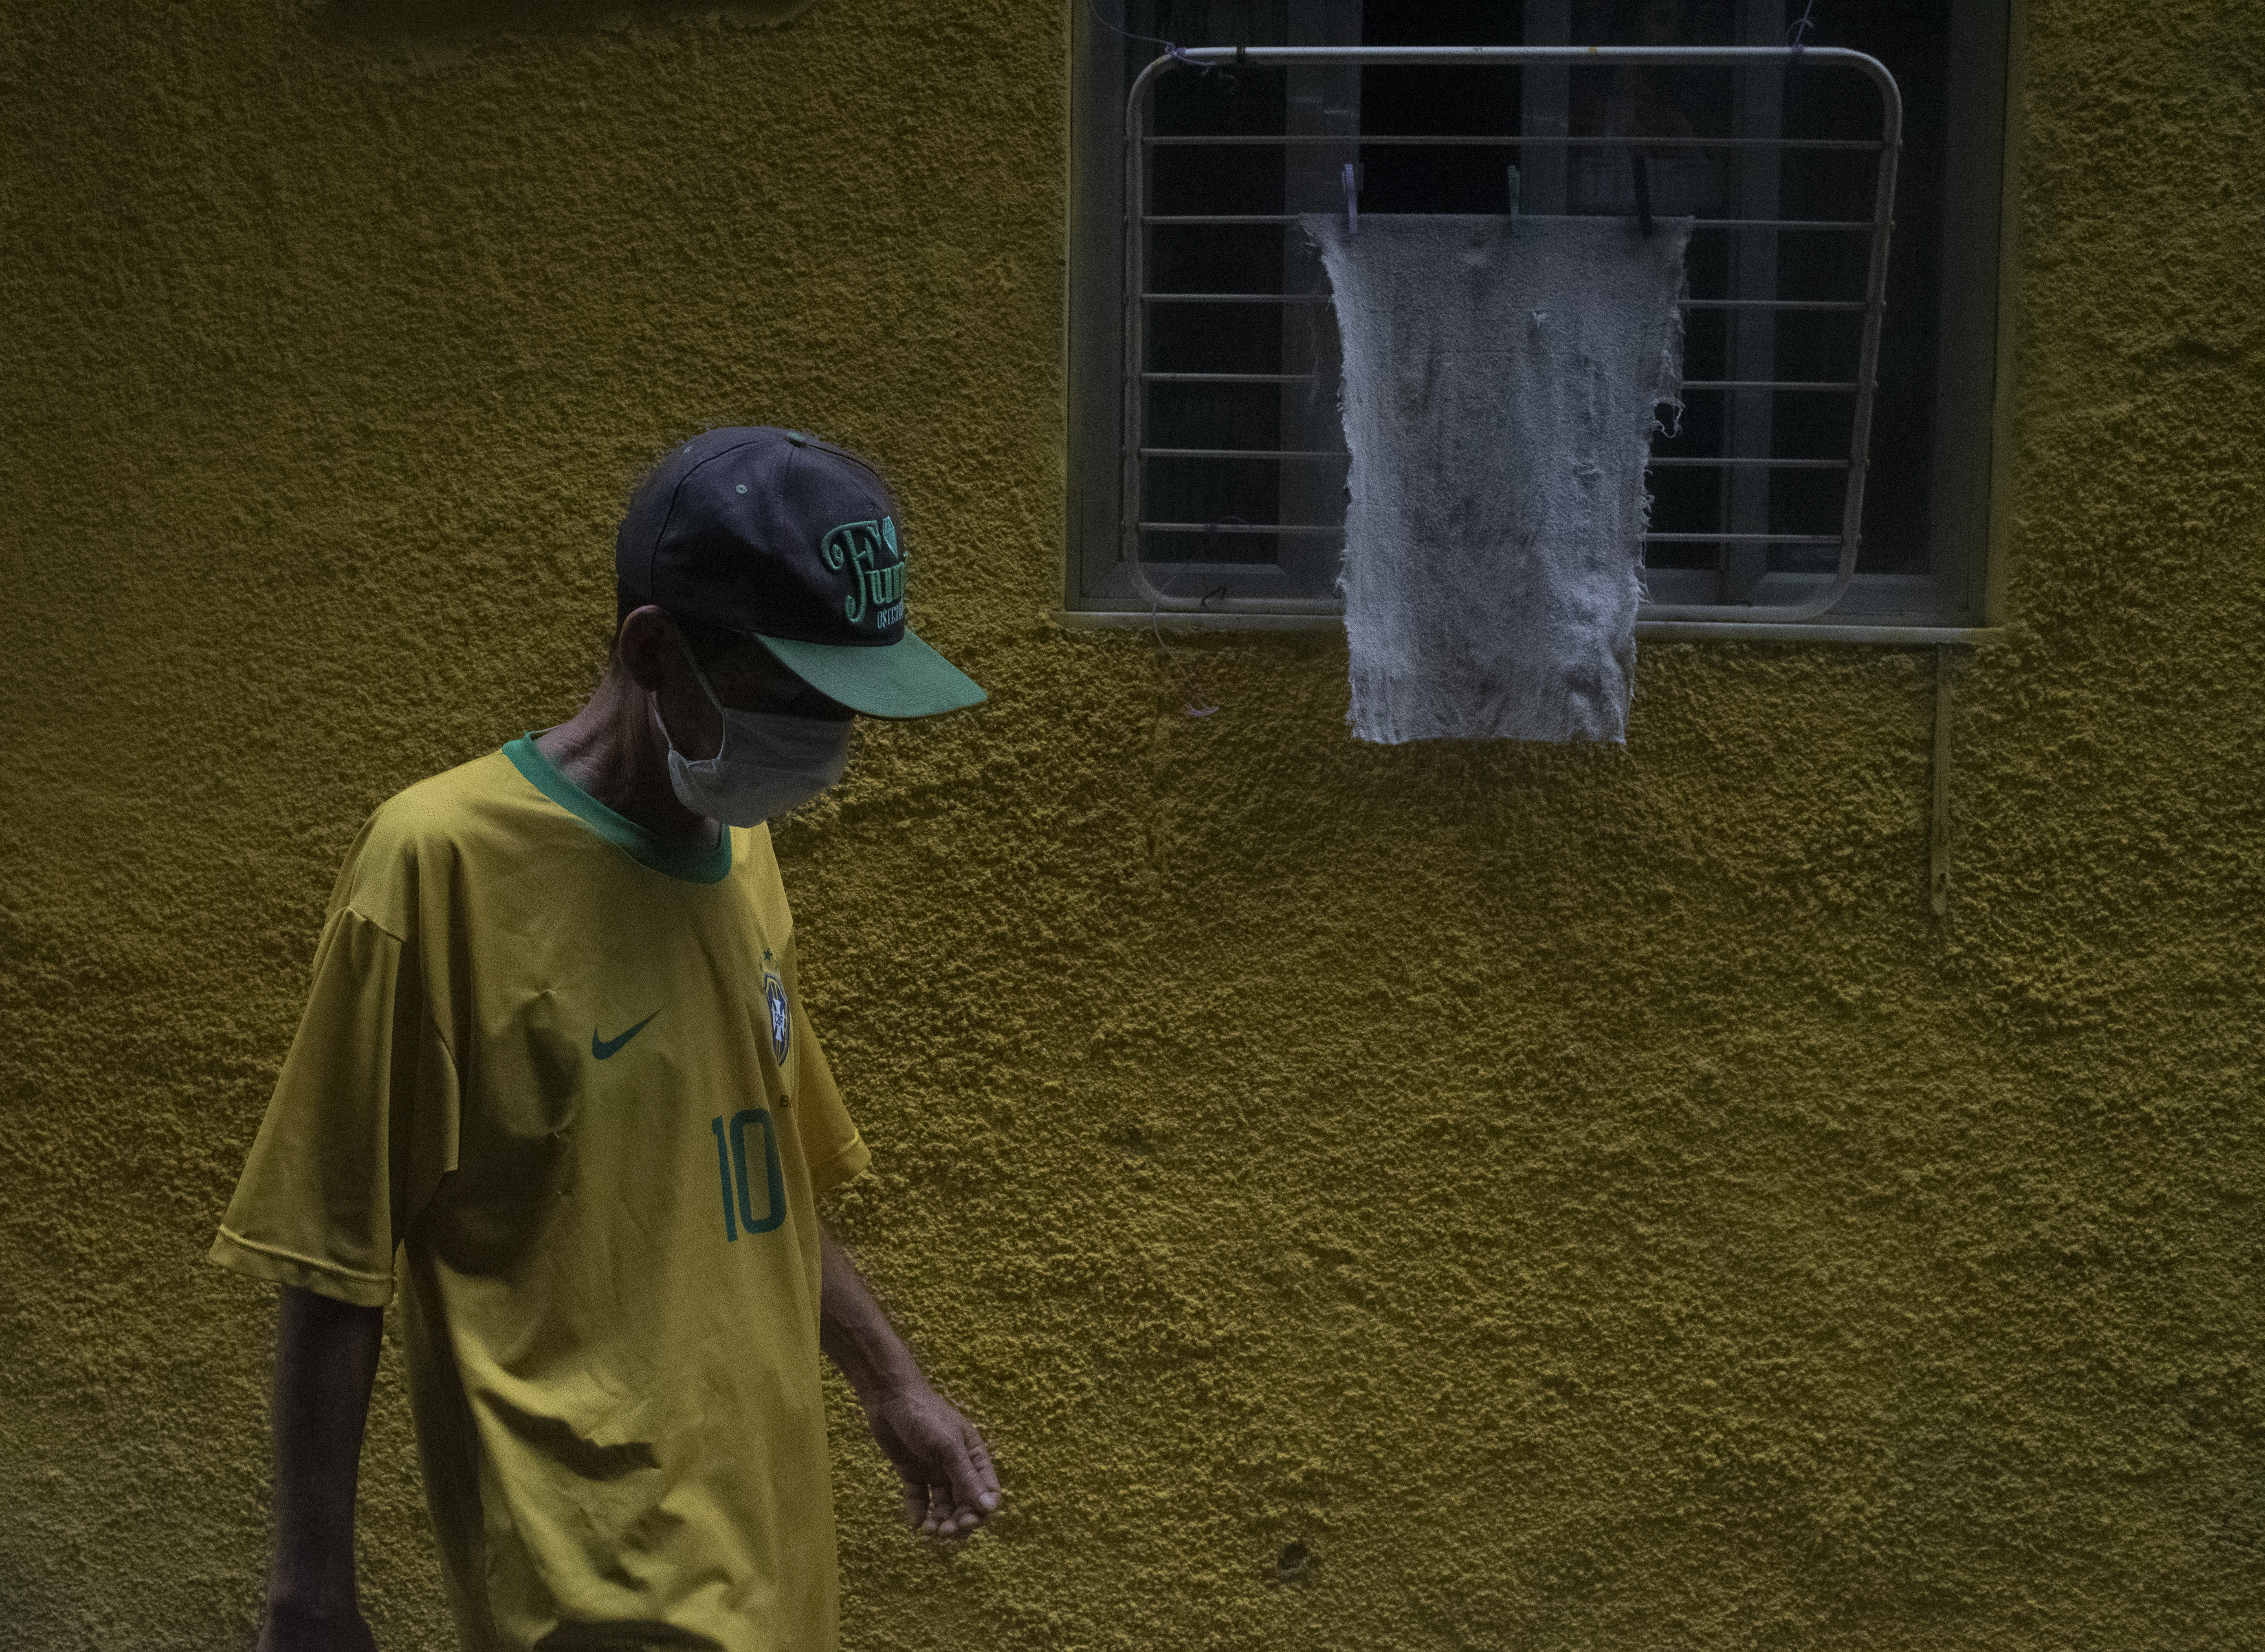 A Rocinha favela resident in Rio de Janeiro, Brazil, on May 27, 2020 during the COVID-19 pandemic.